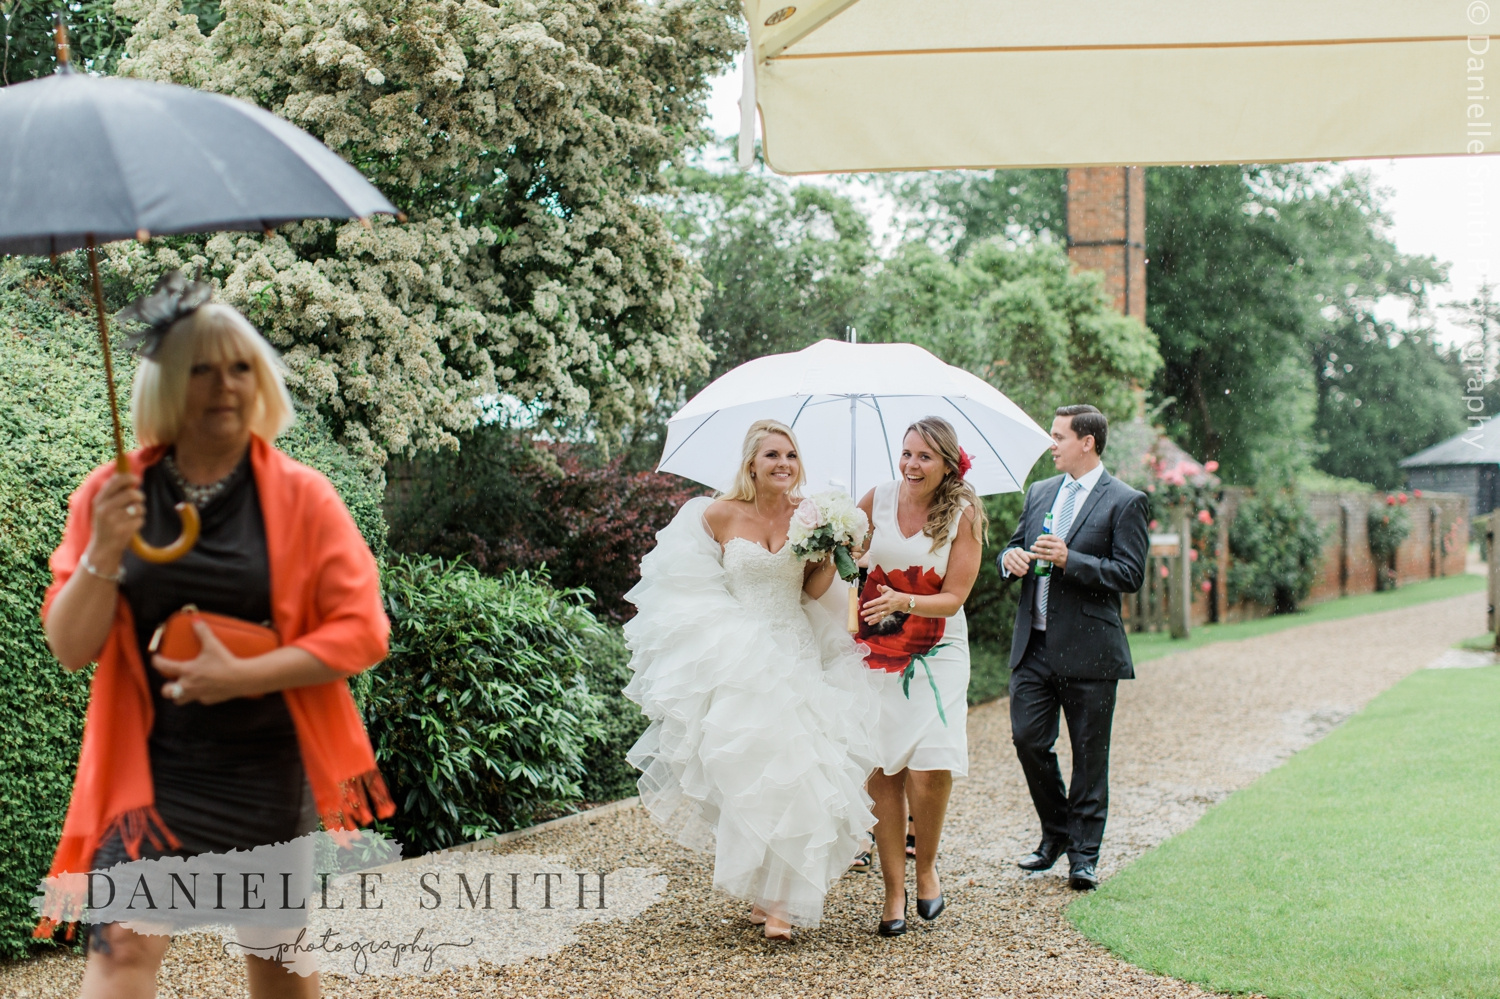 bride walking in rain with umbrella